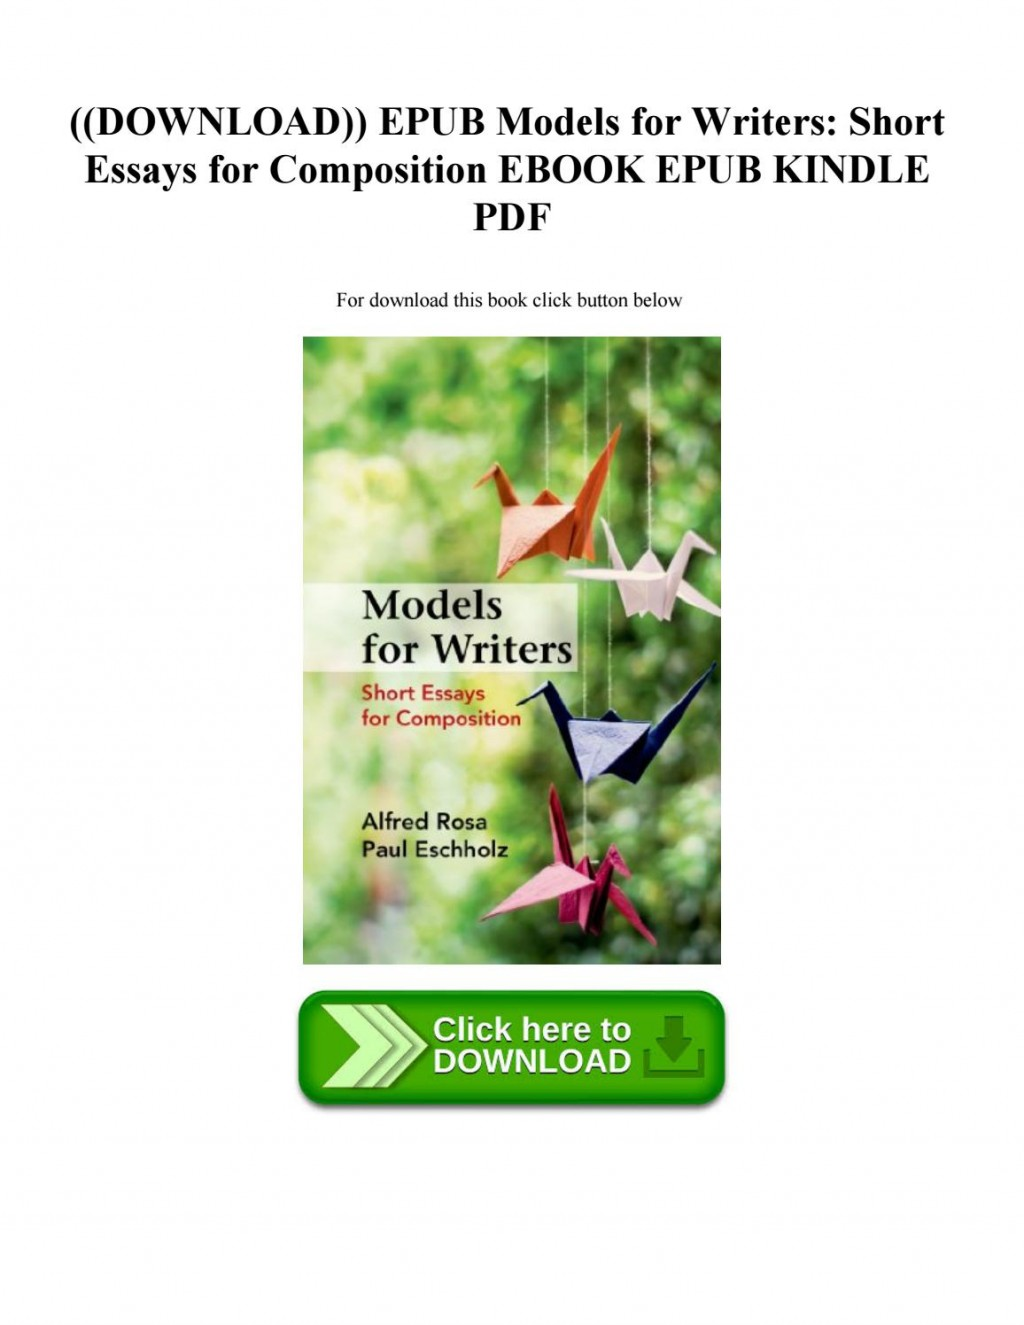 011 Essay Example Models For Writers Short Essays Composition Page 1 Singular 12th Edition 13th Pdf Large